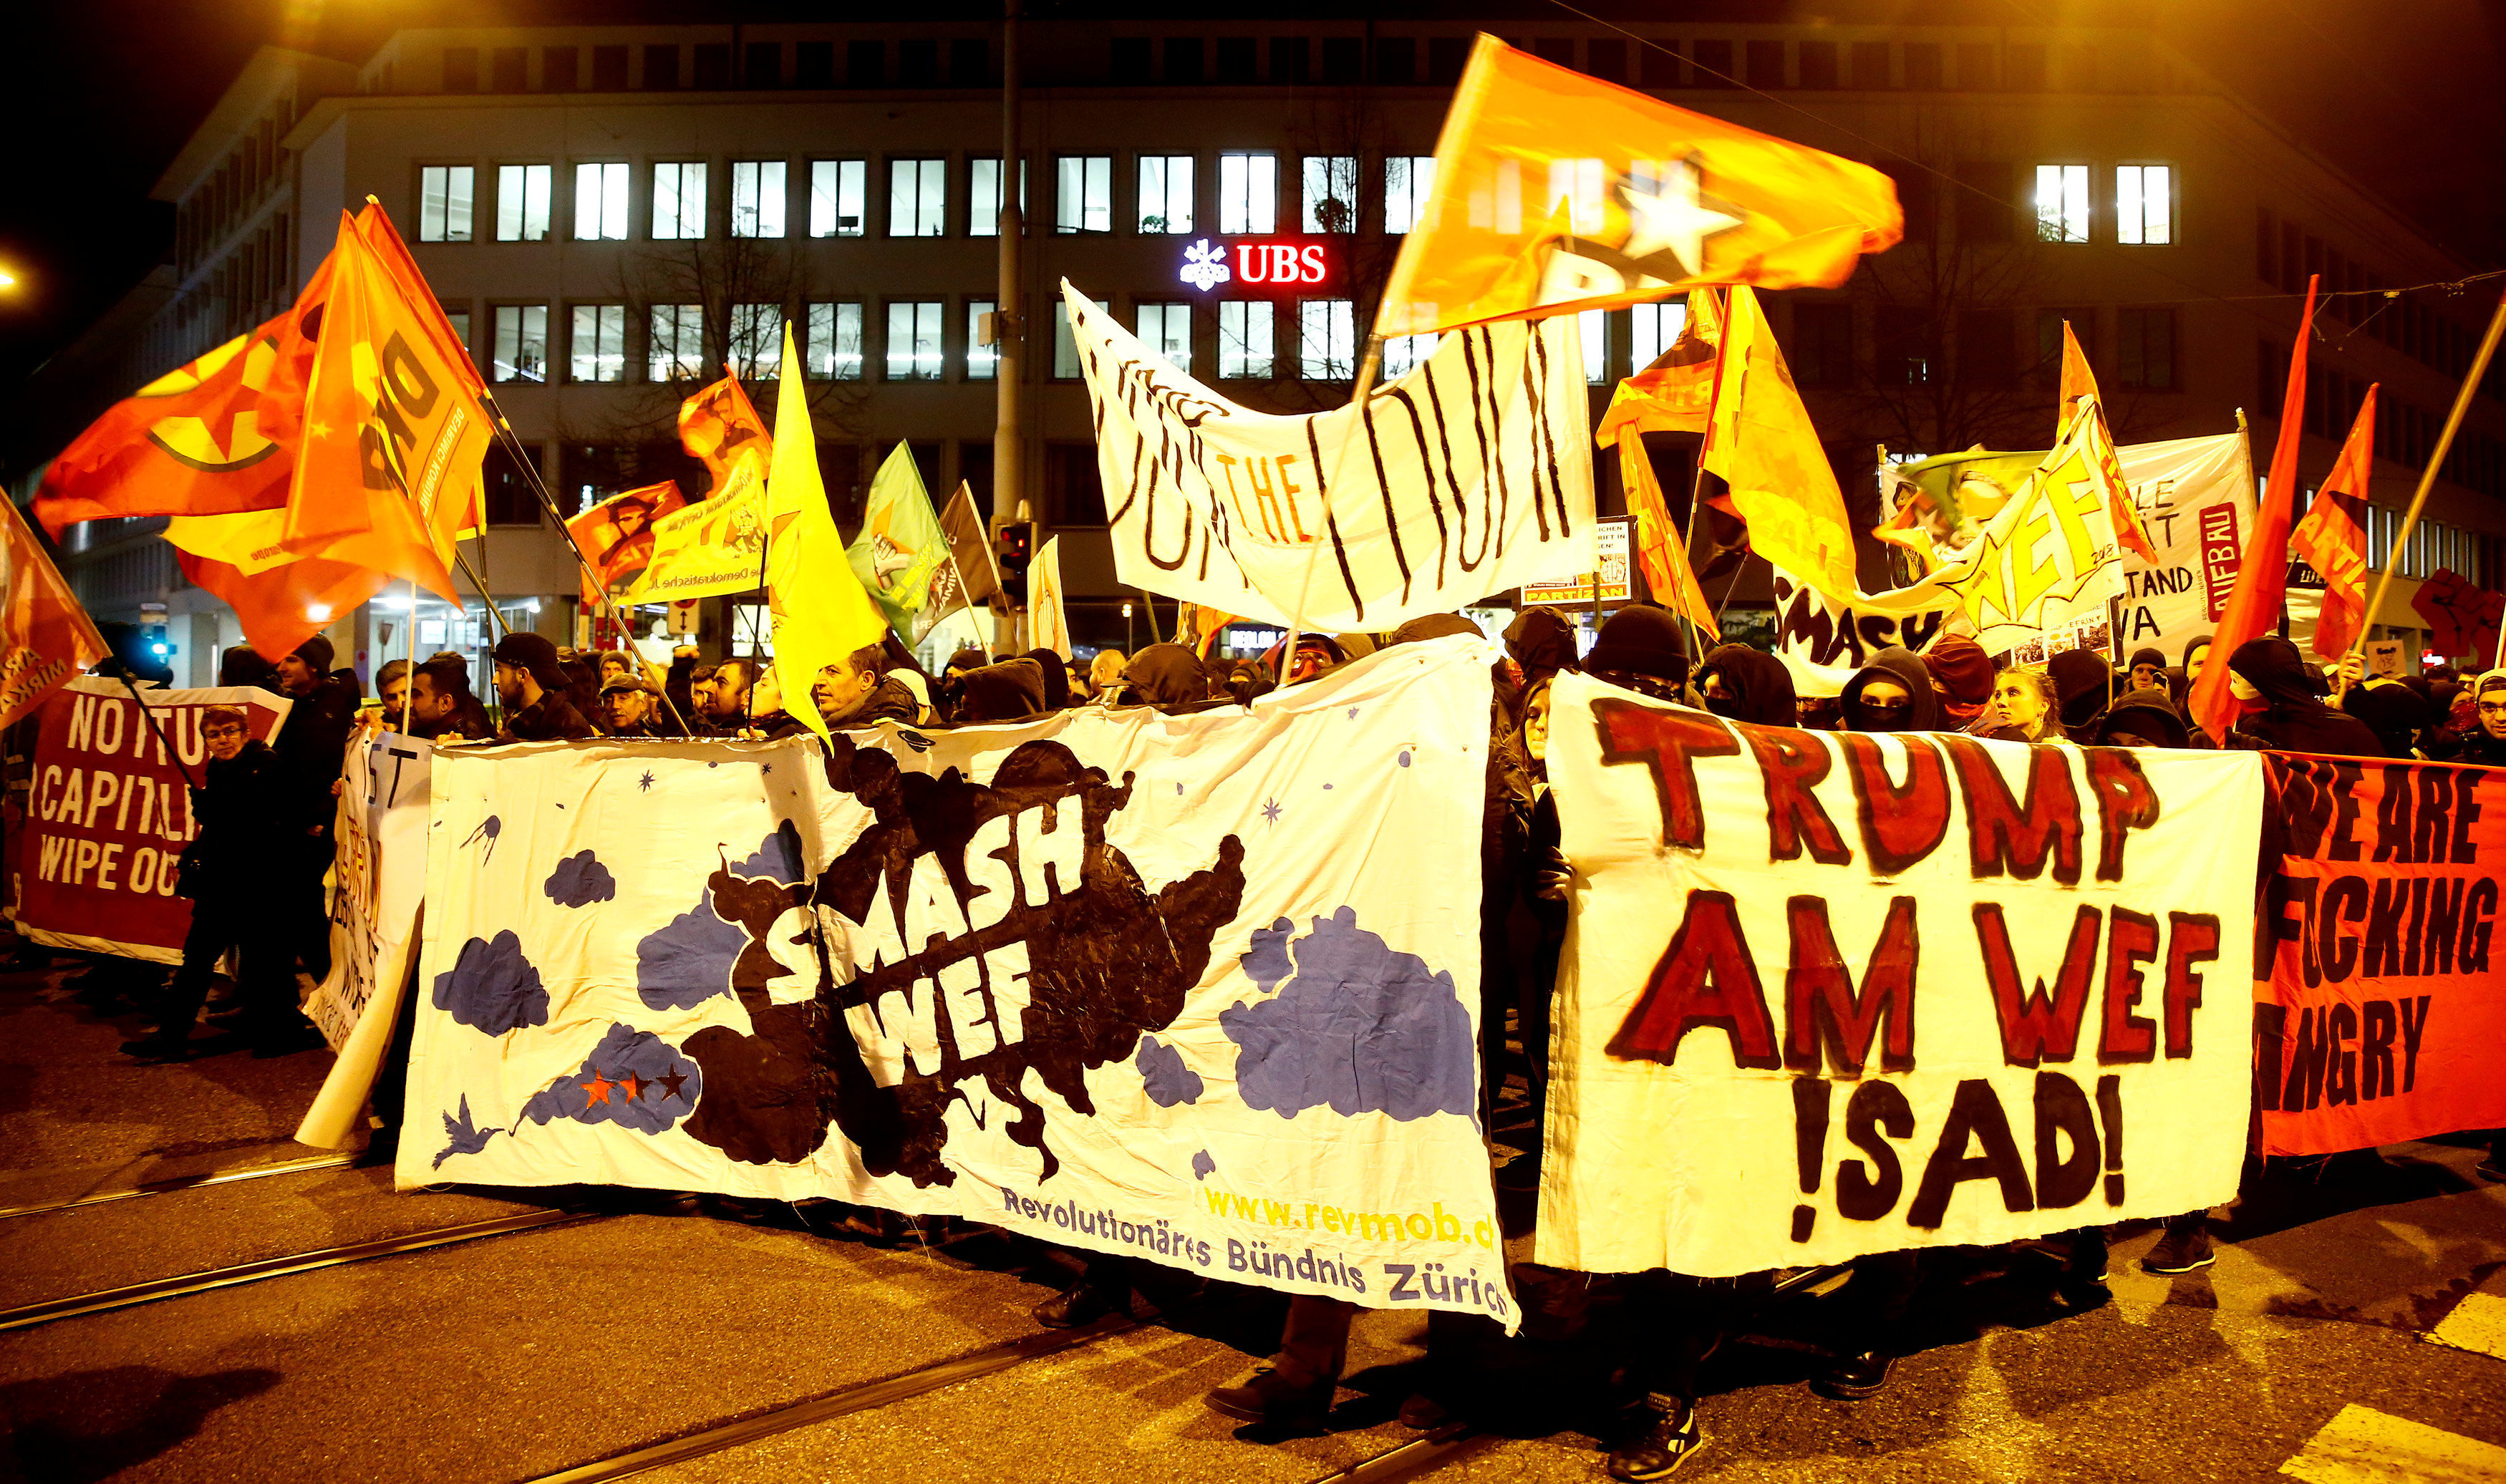 Protesters carry banners during a demonstration against U.S. President Trump in Zurich